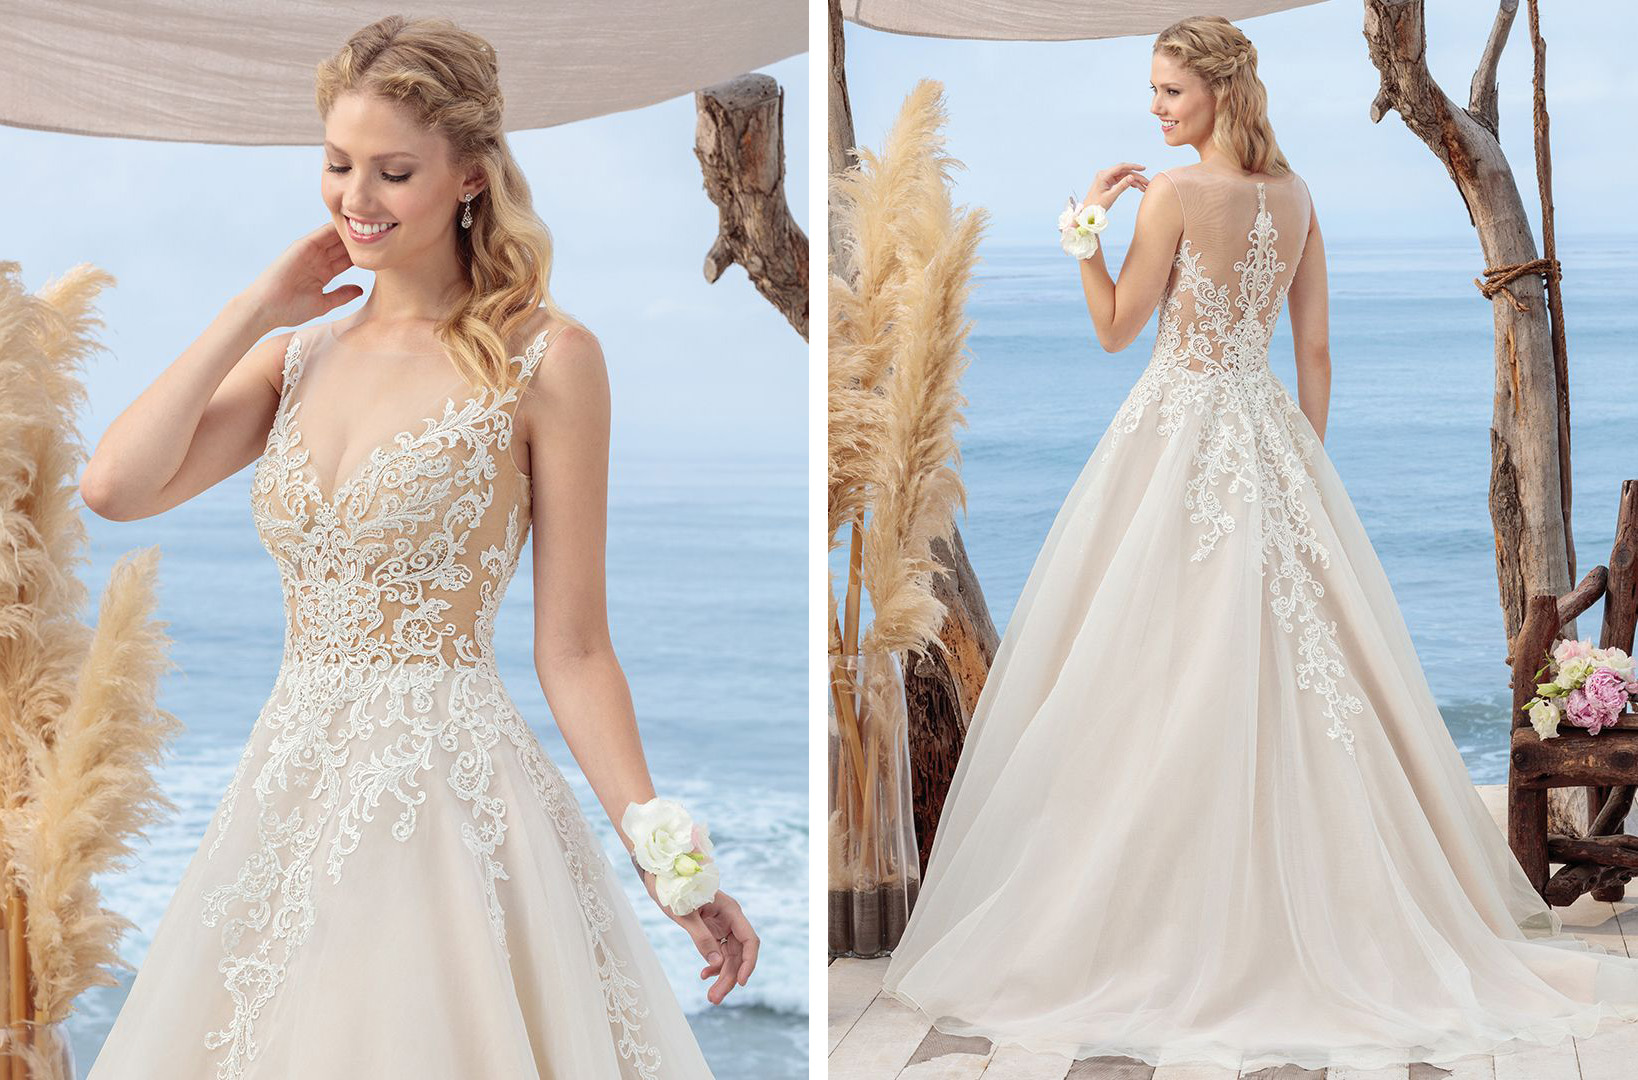 Illusion Lace Bodice Wedding Dress by Beloved